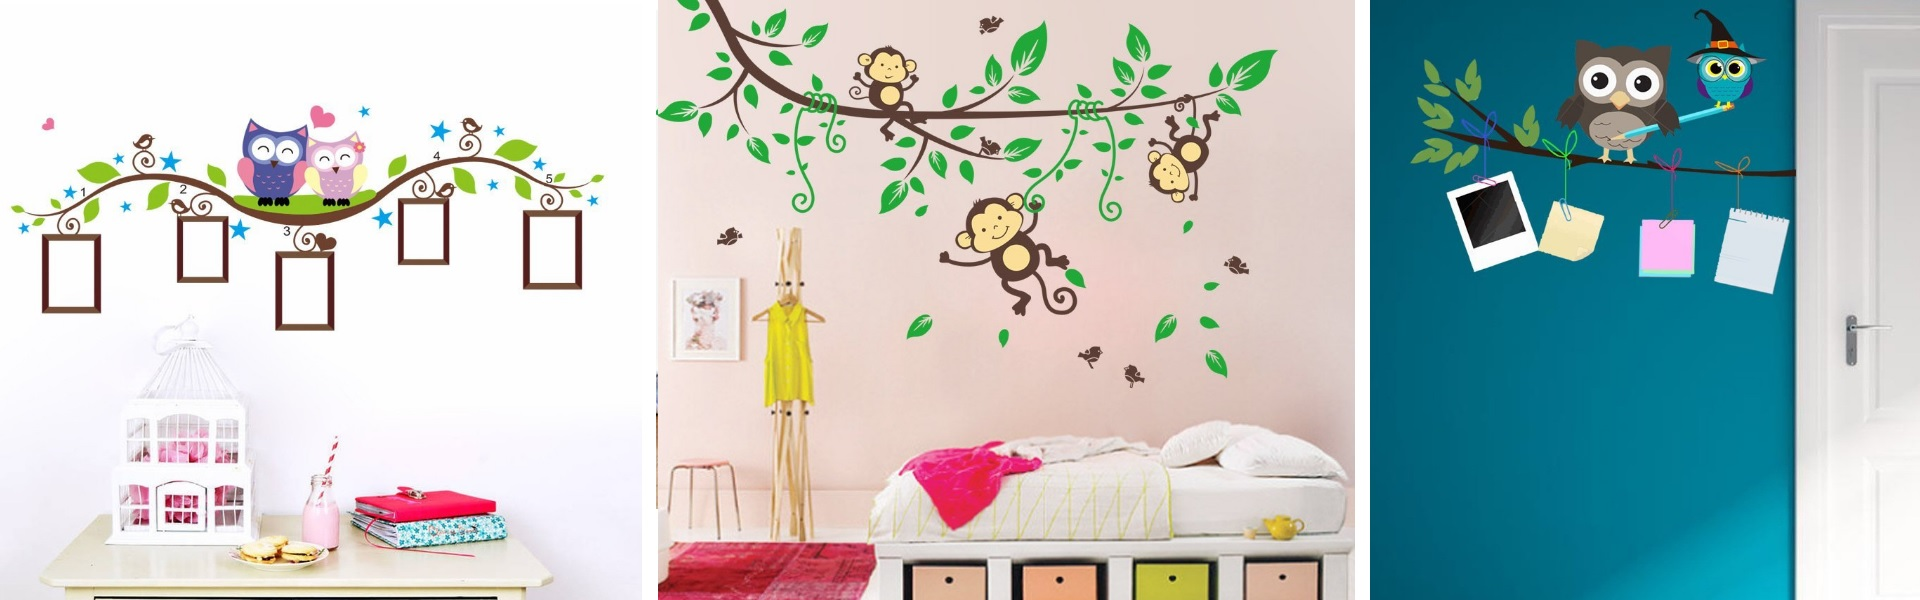 eulen wandsticker f rs kinderzimmer. Black Bedroom Furniture Sets. Home Design Ideas